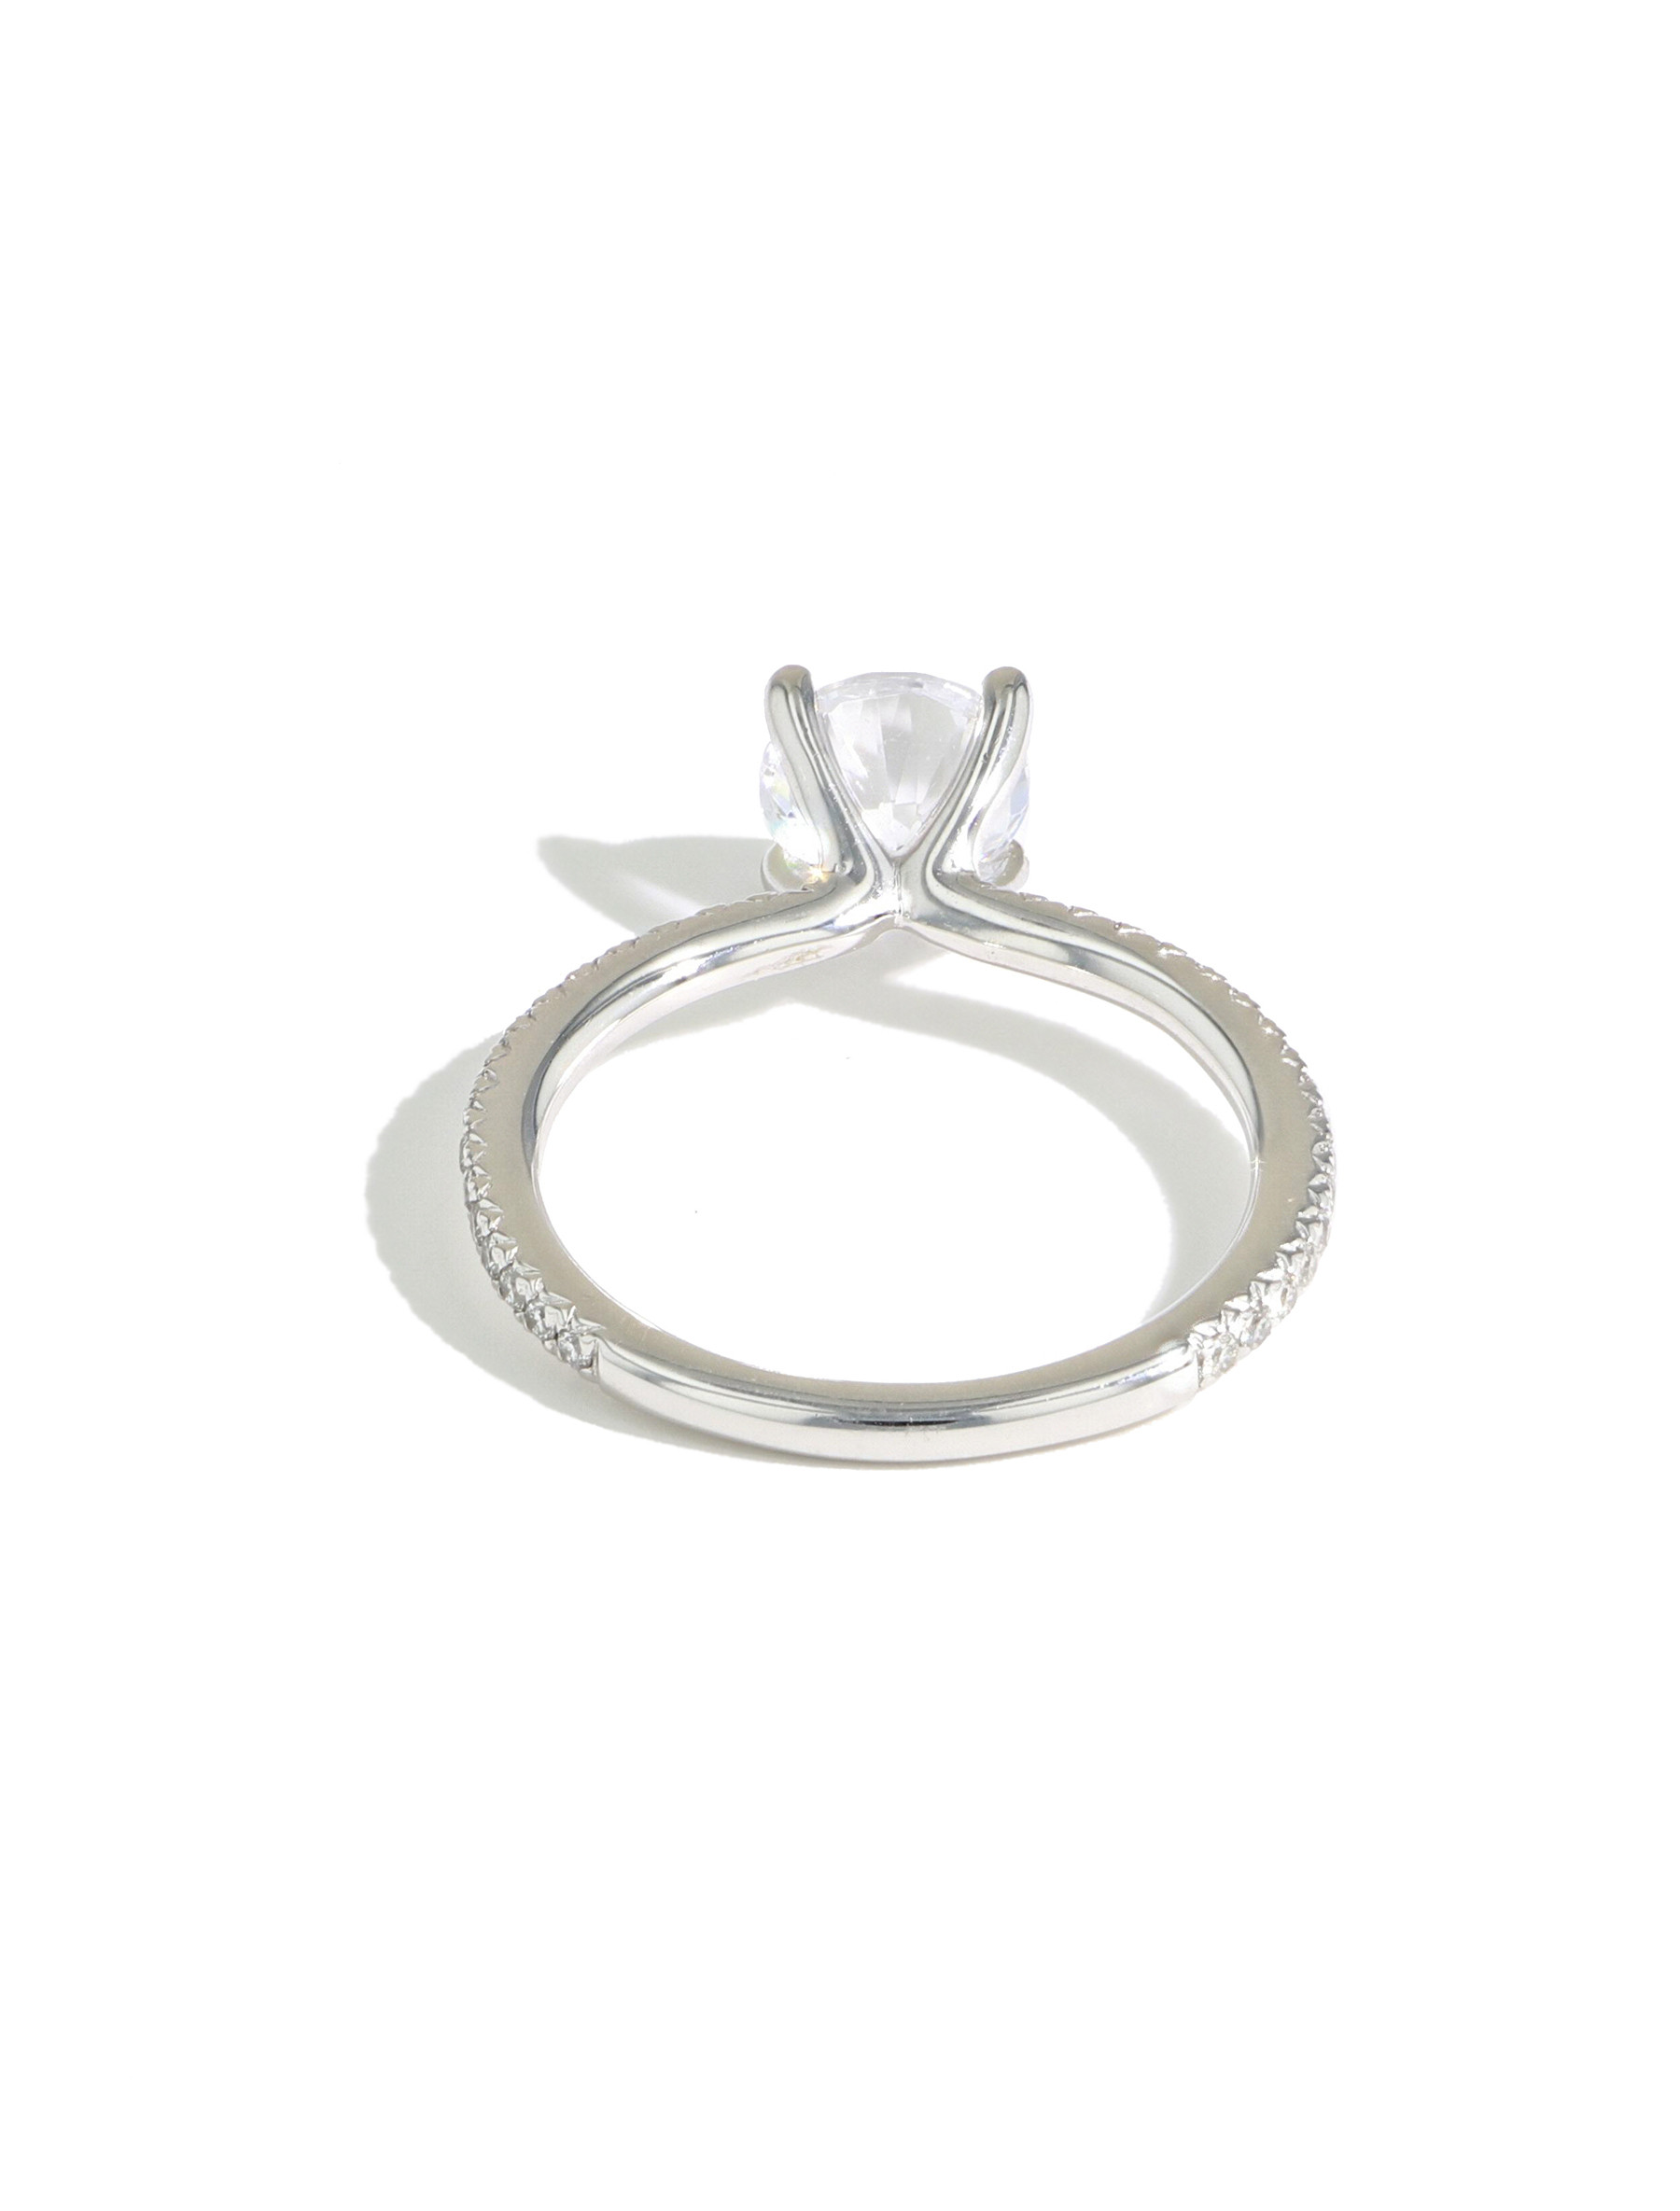 The Round Solitaire Pave Engagement Ring in Platinum back view